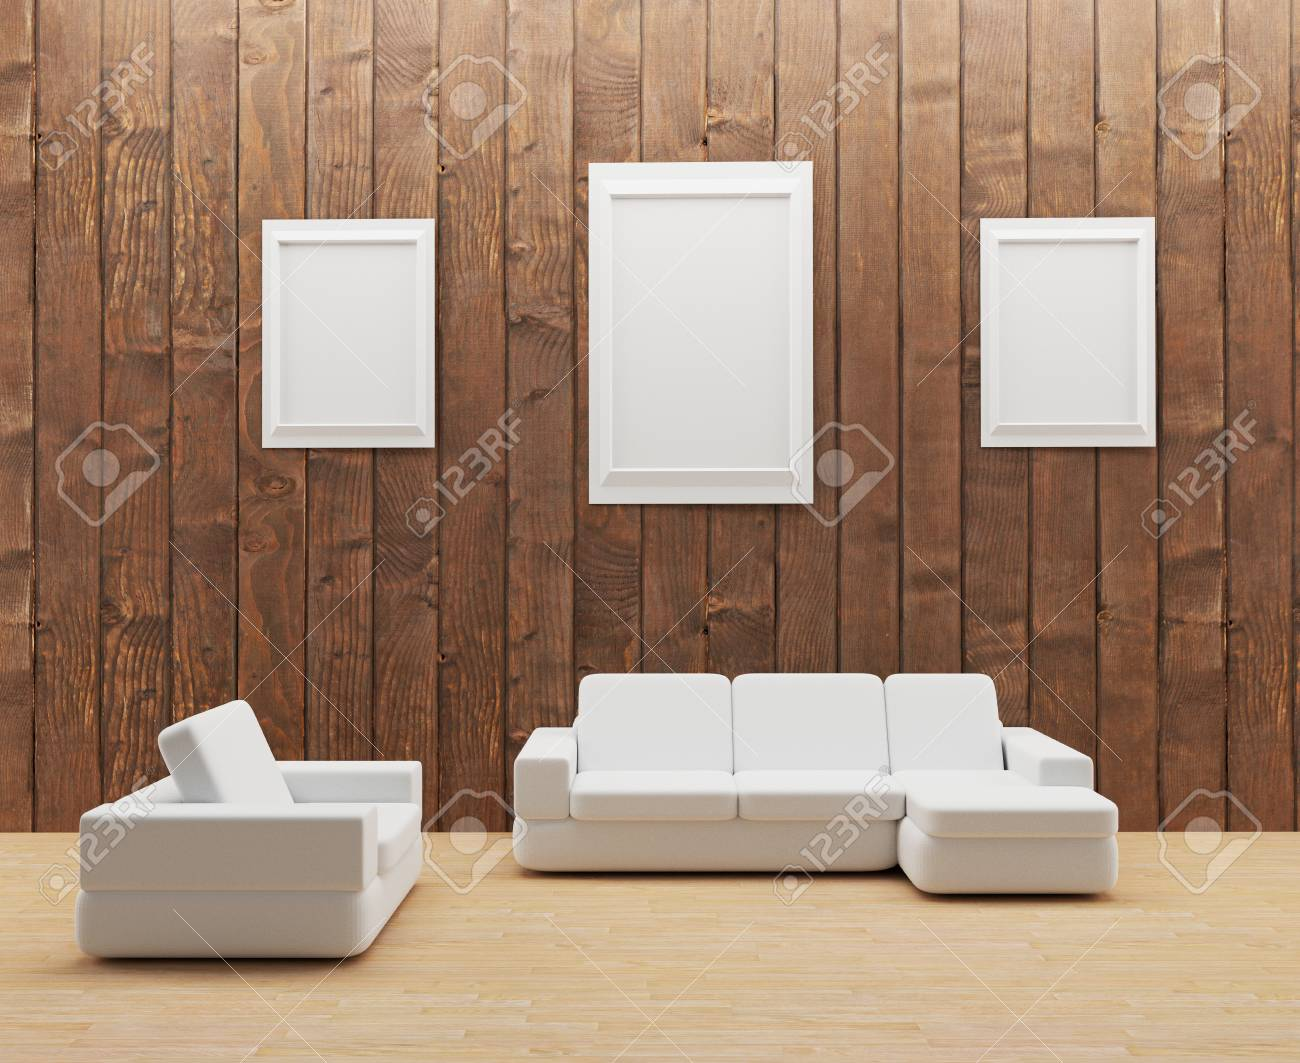 Interior Wooden Room With White Sofa And Frame Photo In 3d Illustration Stock Photo Picture And Royalty Free Image Image 69216386